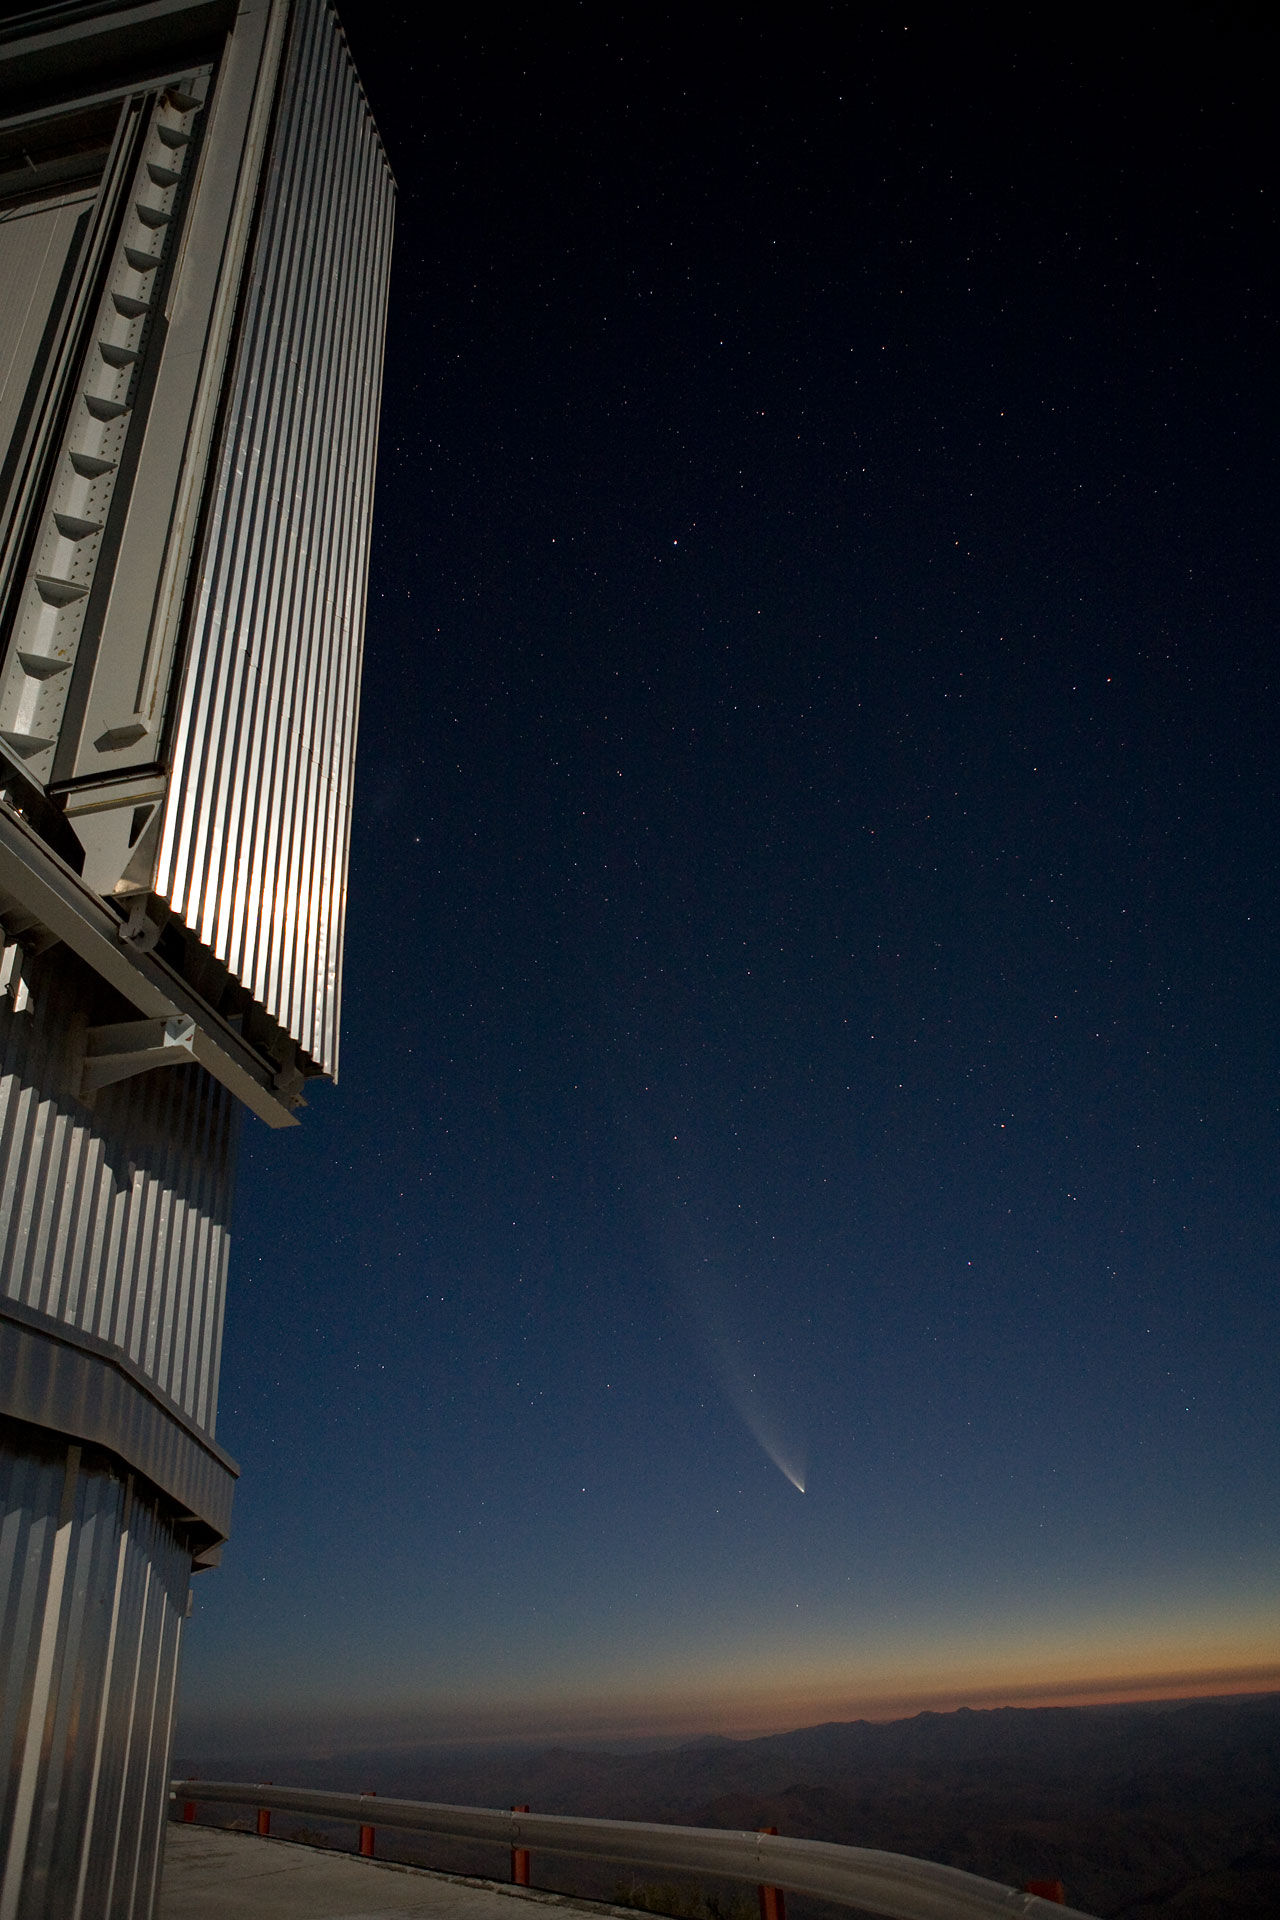 Comet McNaught and NTT dome